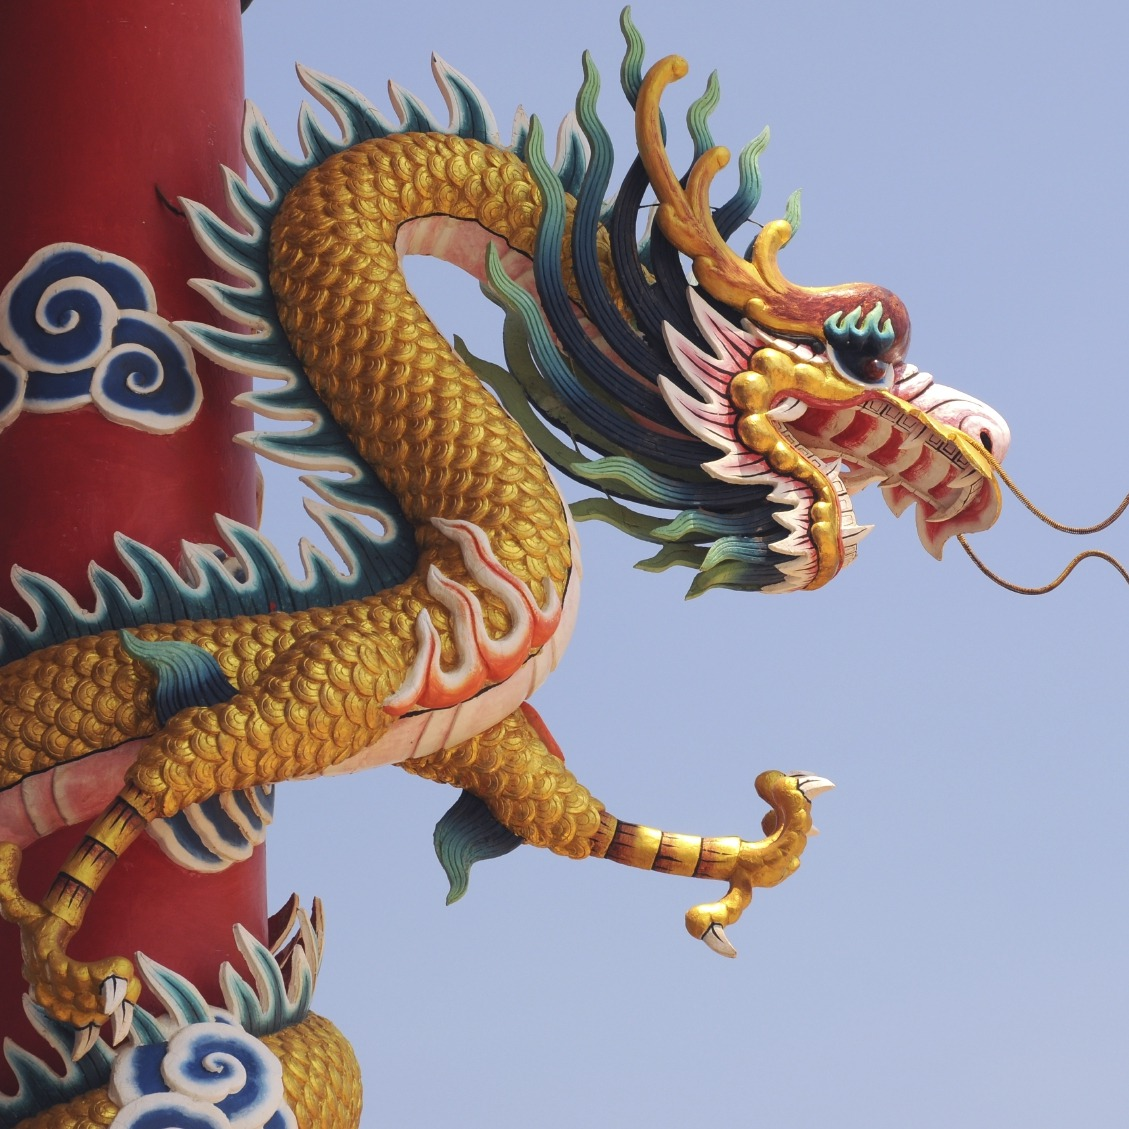 ChineseDragon-in-trading